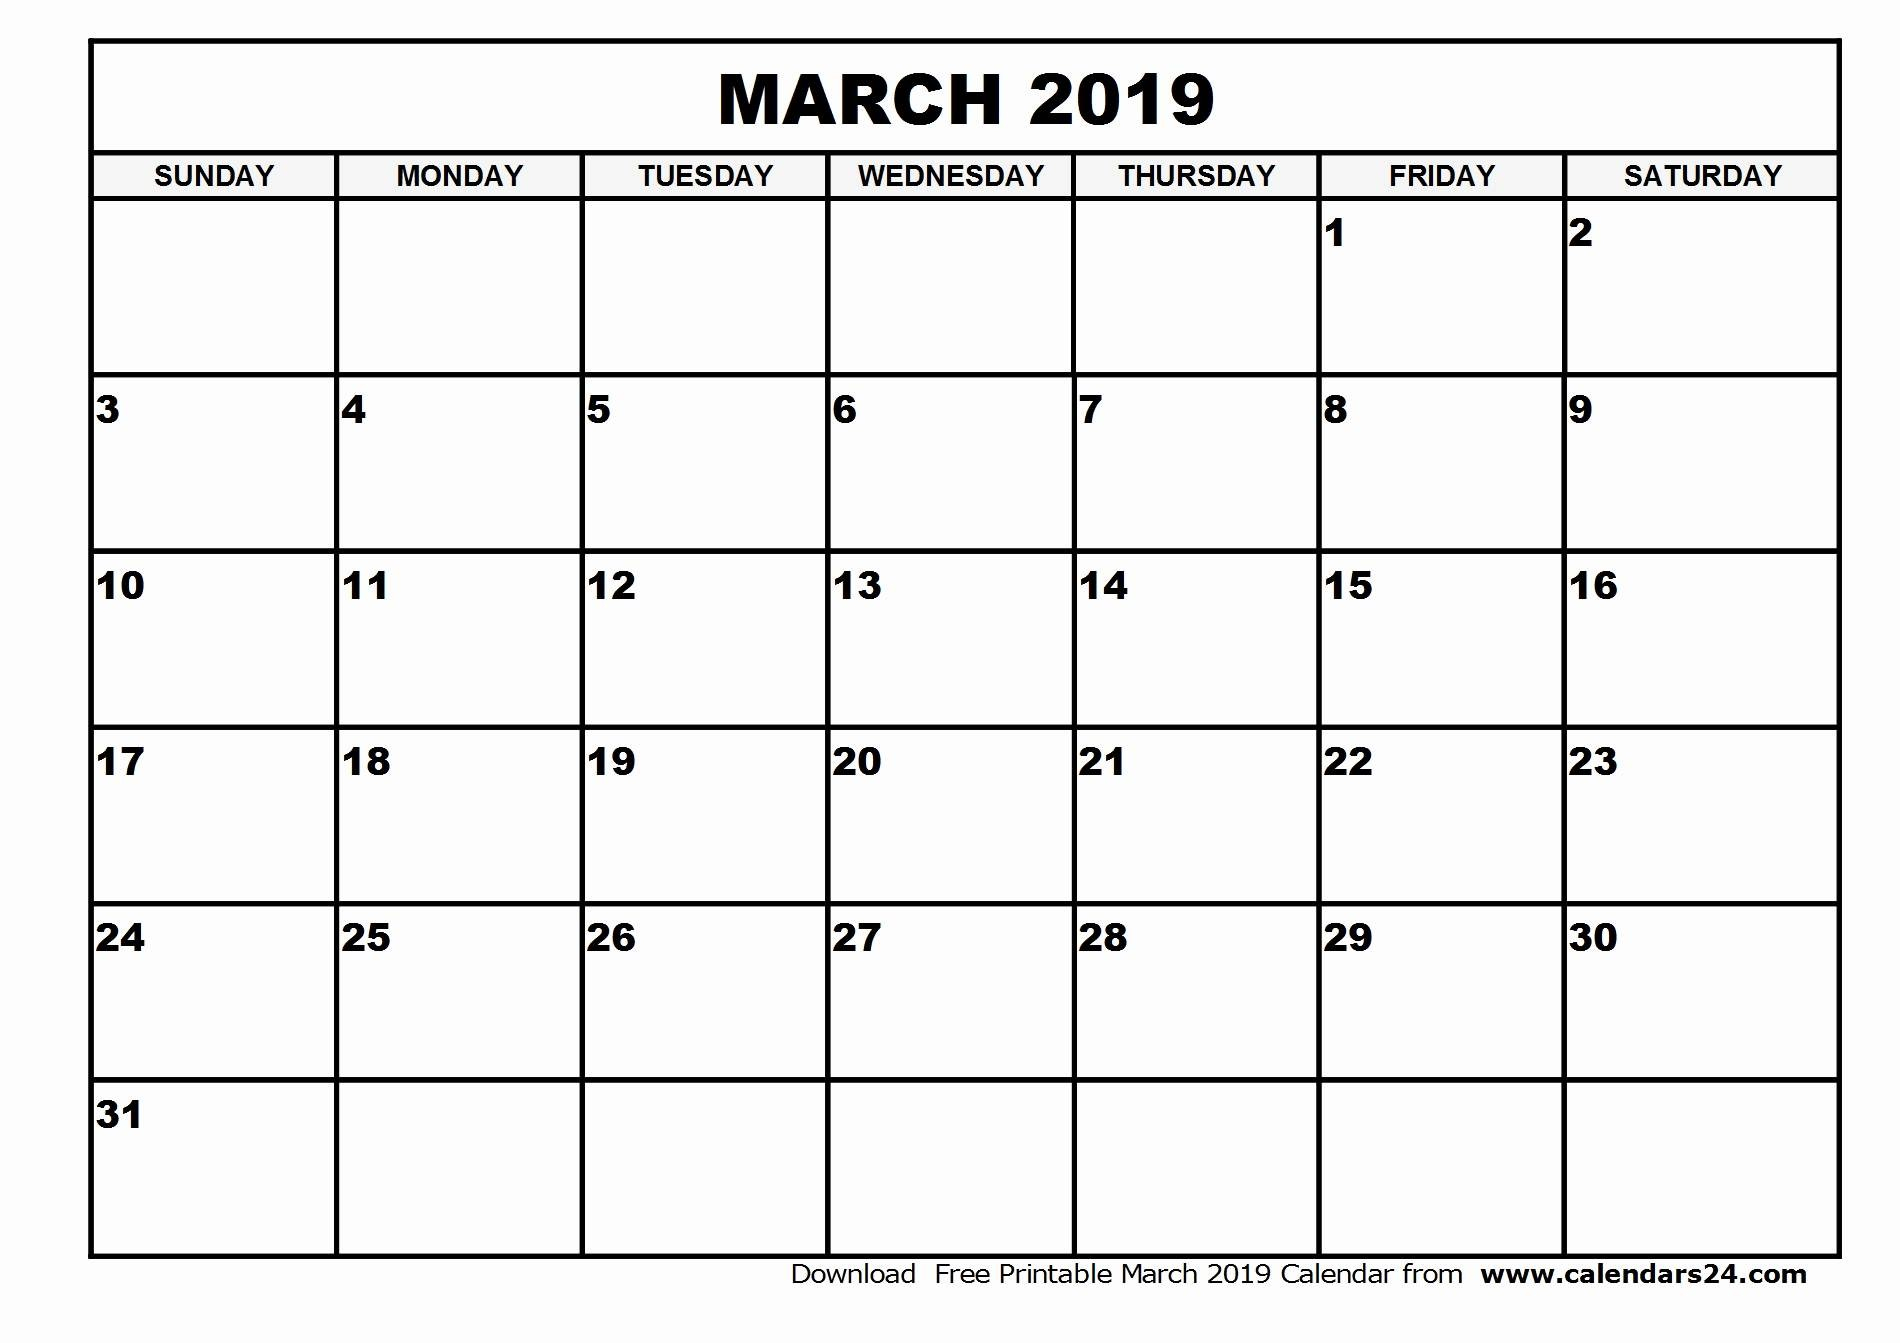 Blank March 2019 Calendar Templates Printable Download - July 2019 inside Printable Editable Monthly Calendar Template